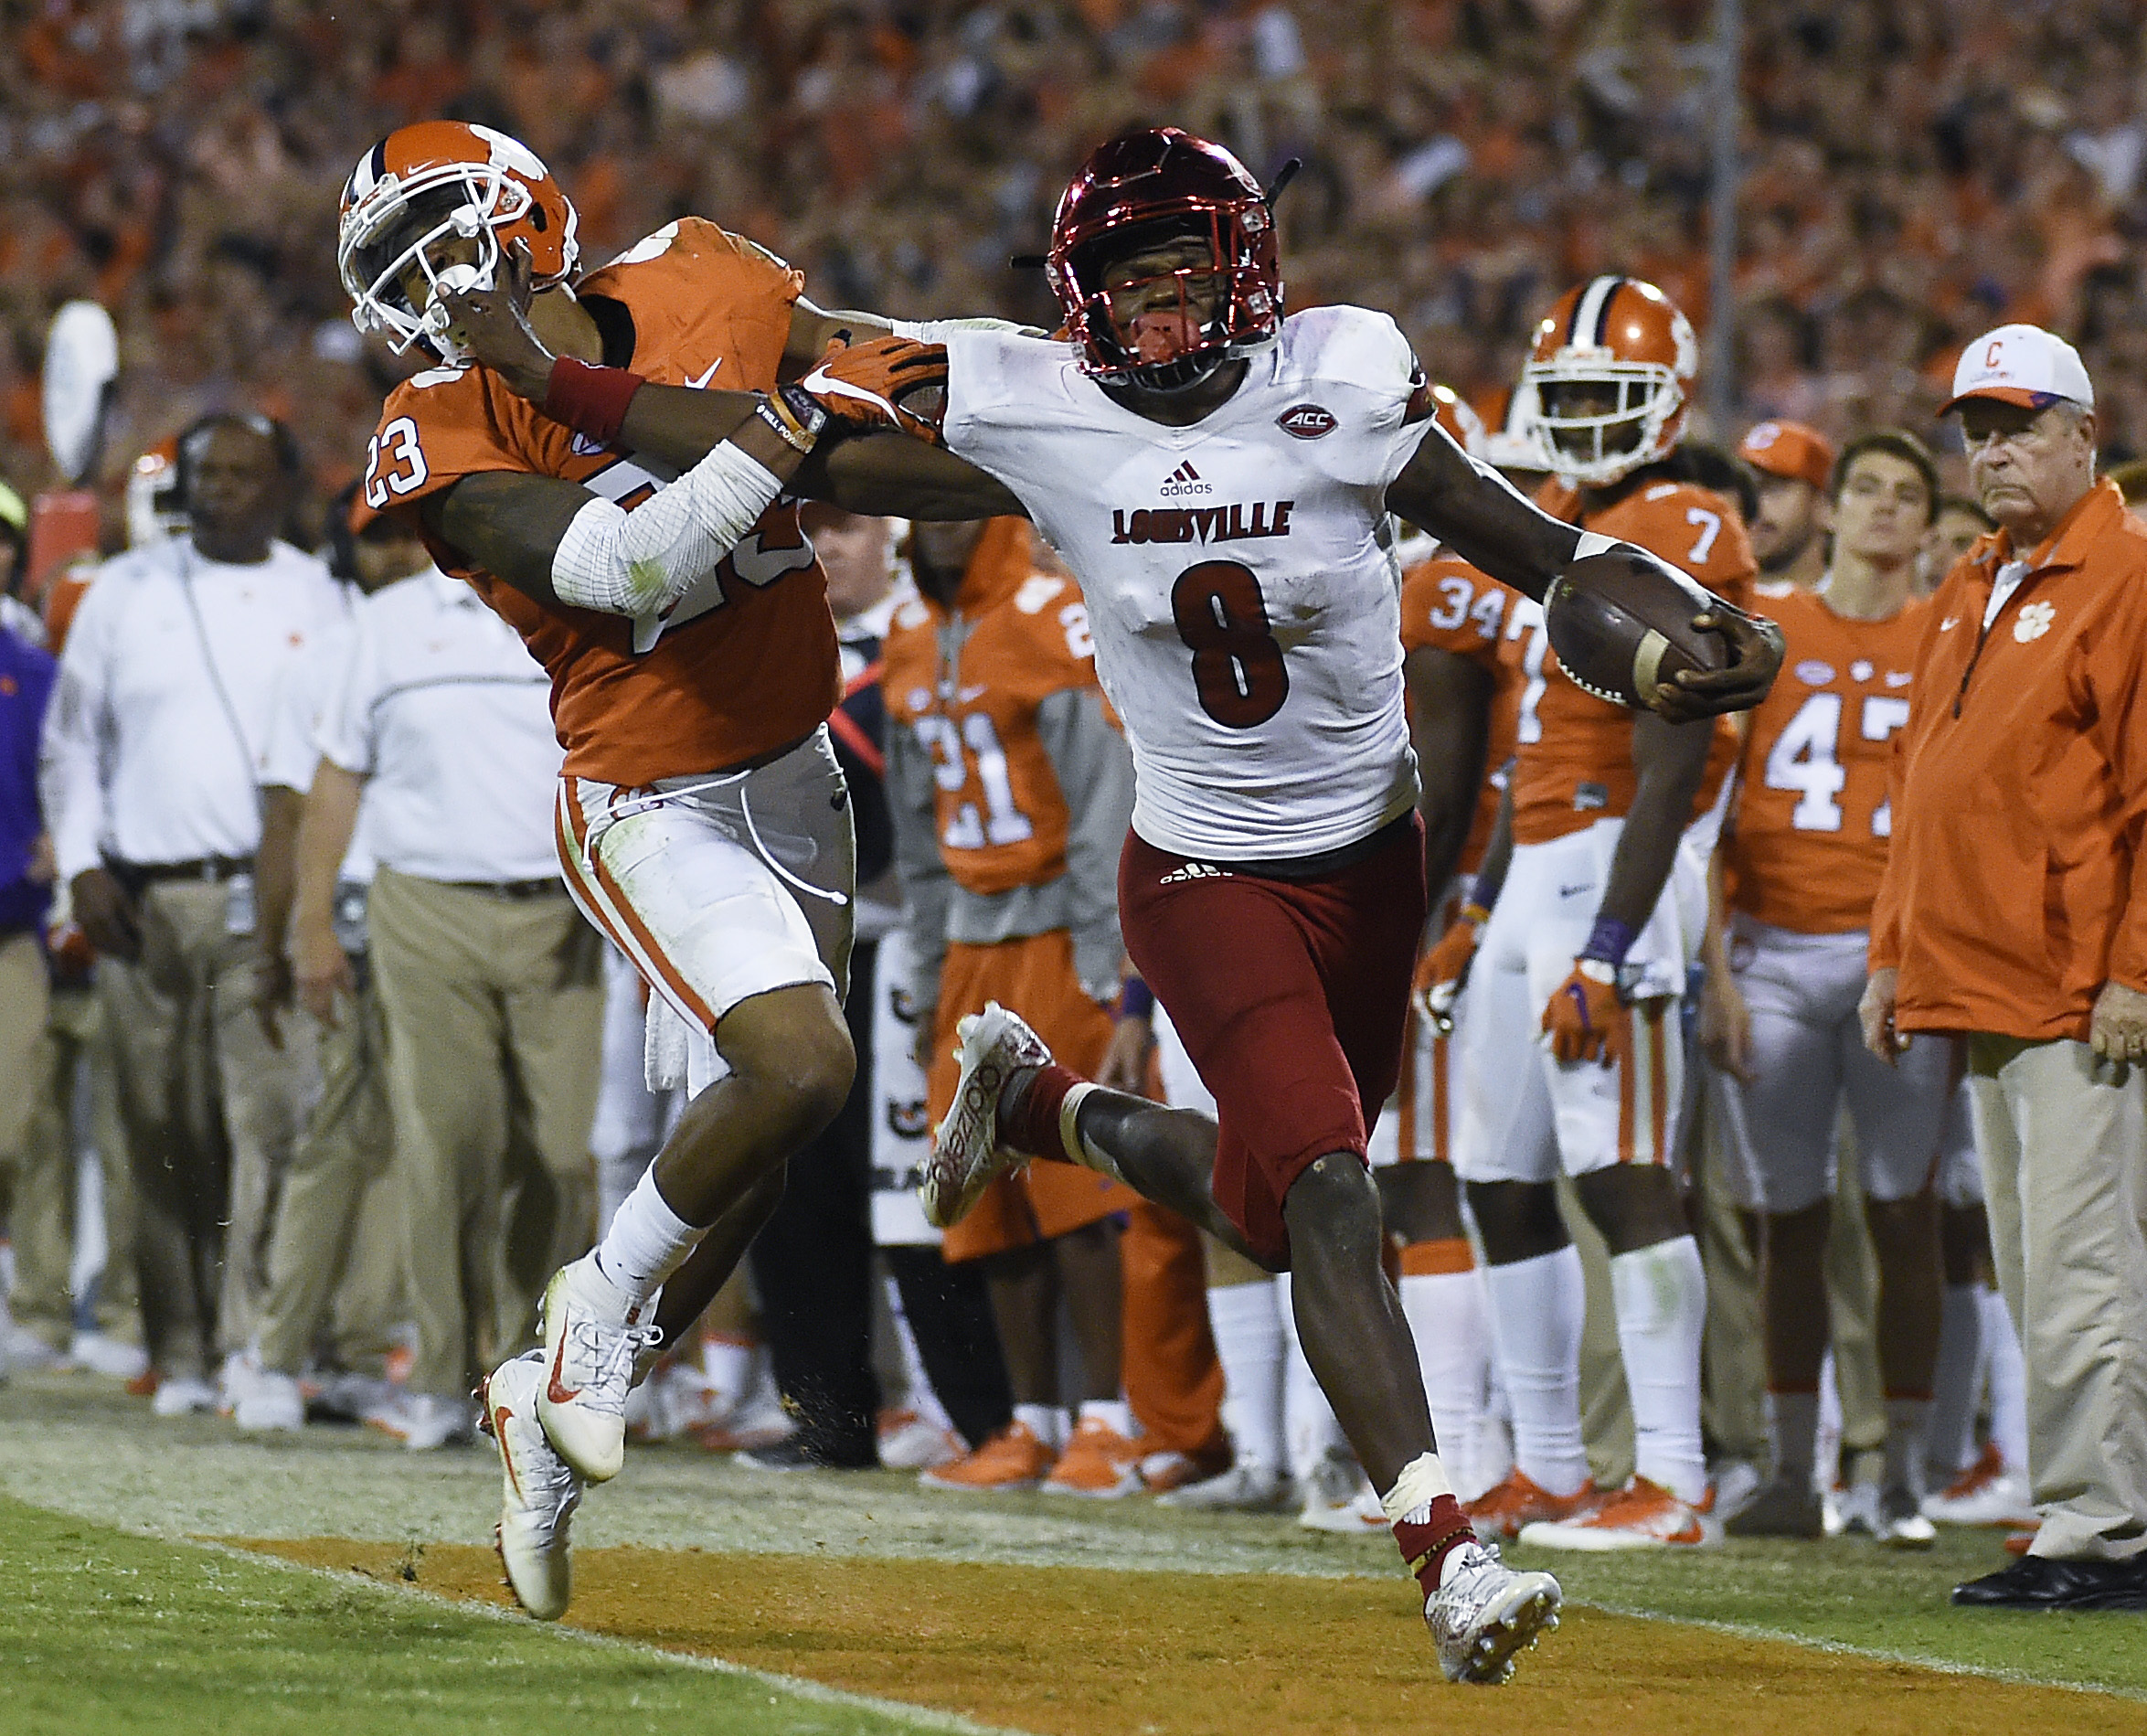 FILE - In this Oct. 1, 2016, file photo, Louisville quarterback Lamar Jackson (8) stiff-arms Clemson safety Van Smith (23) as he goes out of bounds during the second half of an NCAA college football game, in Clemson, S.C. The AP college football  Player o